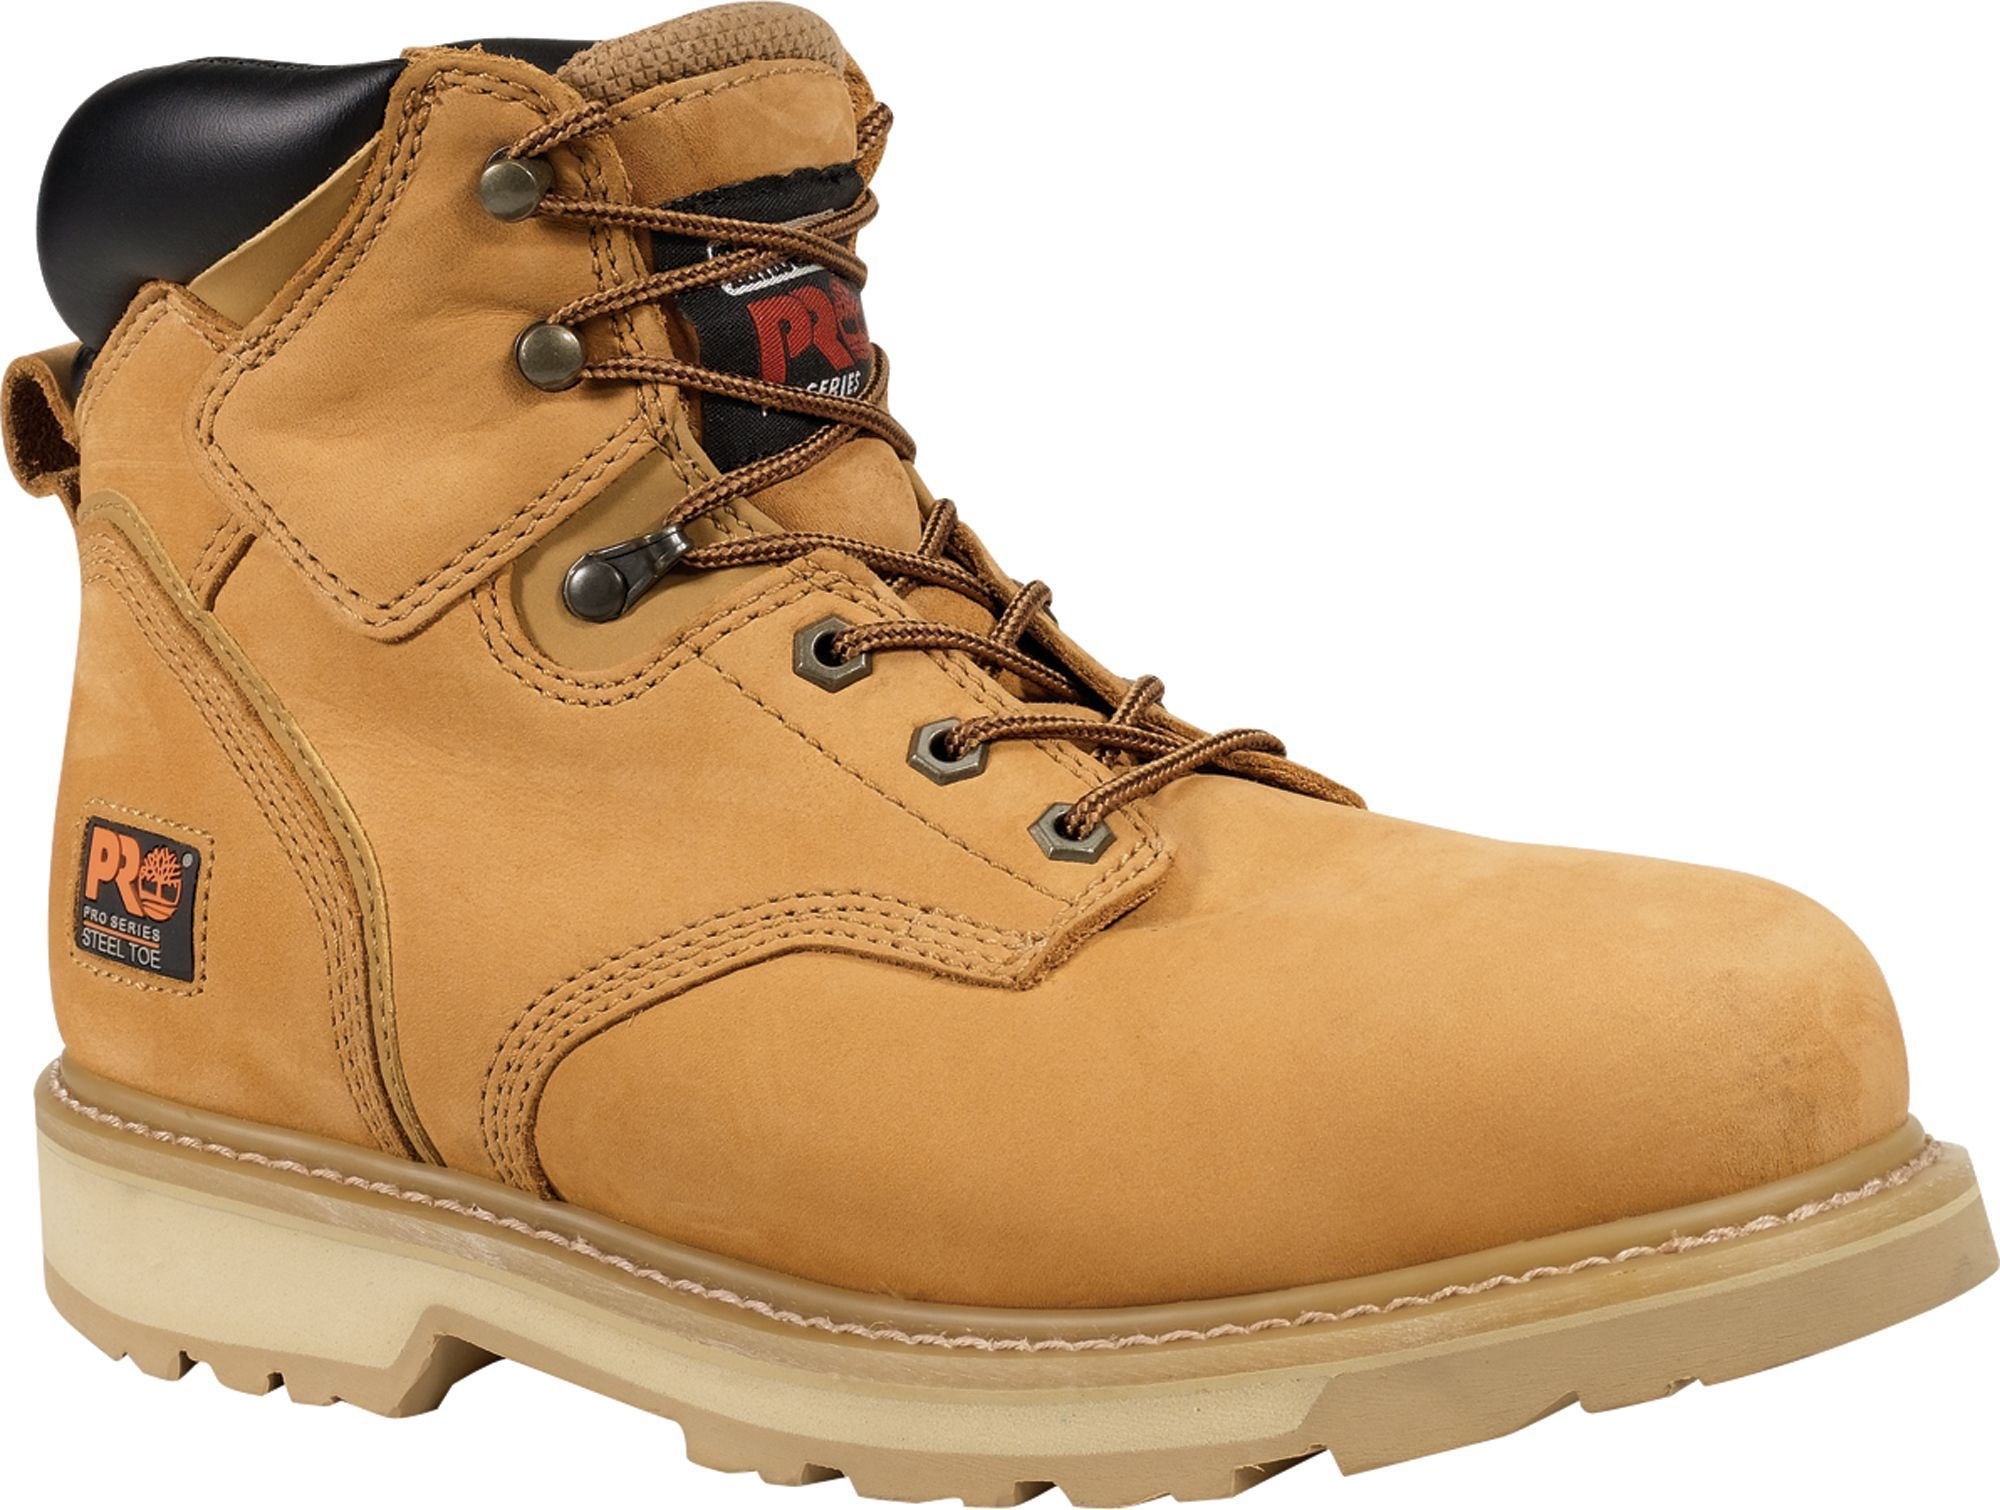 a2f229e54fa Timberland PRO Men's Pit Boss 6'' Soft Toe Work Boots in 2019 ...